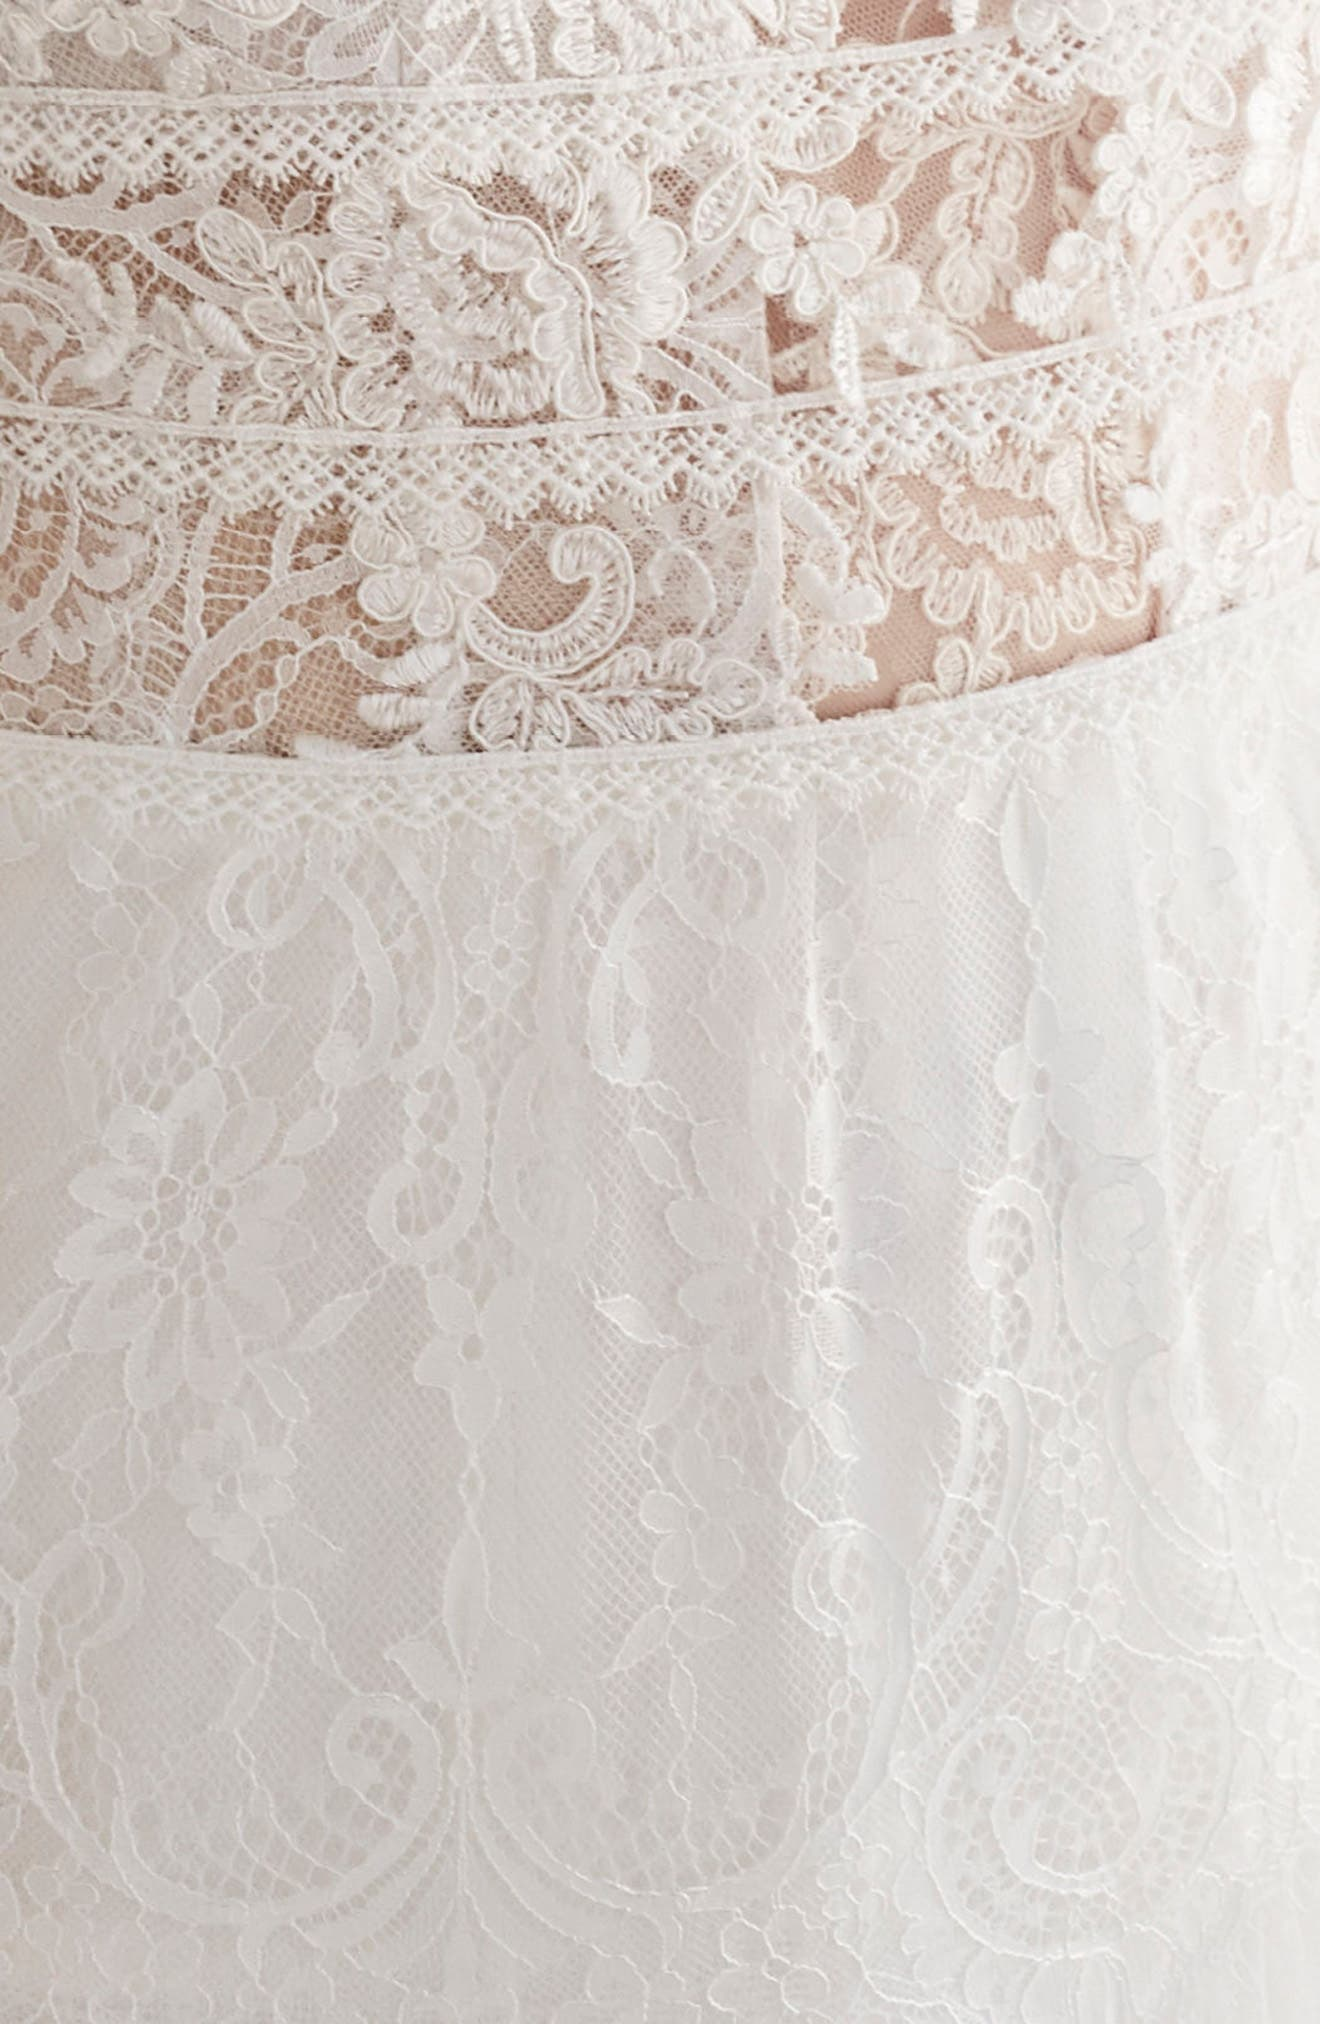 Inmaculada García Olivinia Lace A-Line Gown,                             Alternate thumbnail 3, color,                             IVORY